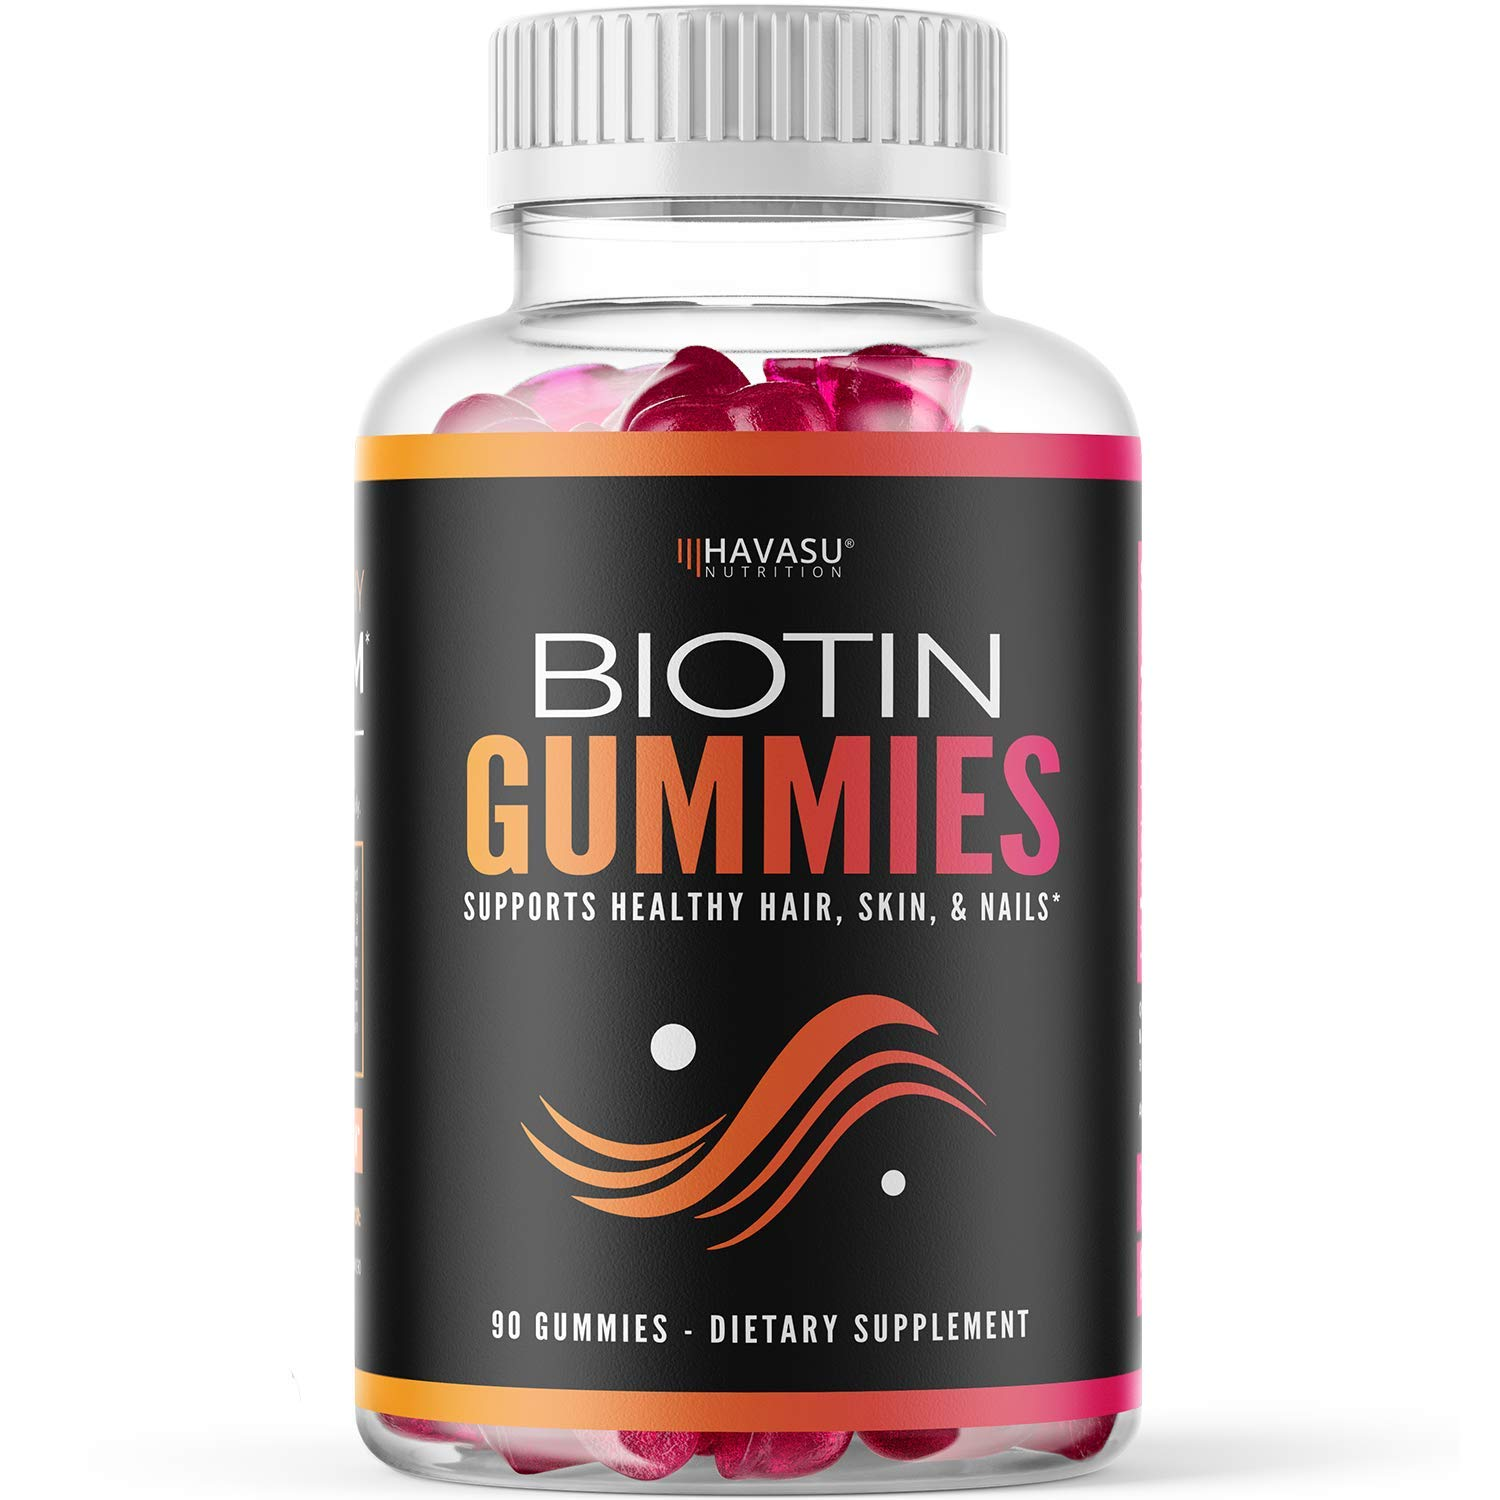 Havasu Nutrition High Potency Biotin Gummies - Natural Hair, Skin, Nail & Metabolism - 5000 mcg, Premium, Pectin-Based, 90 Gummies